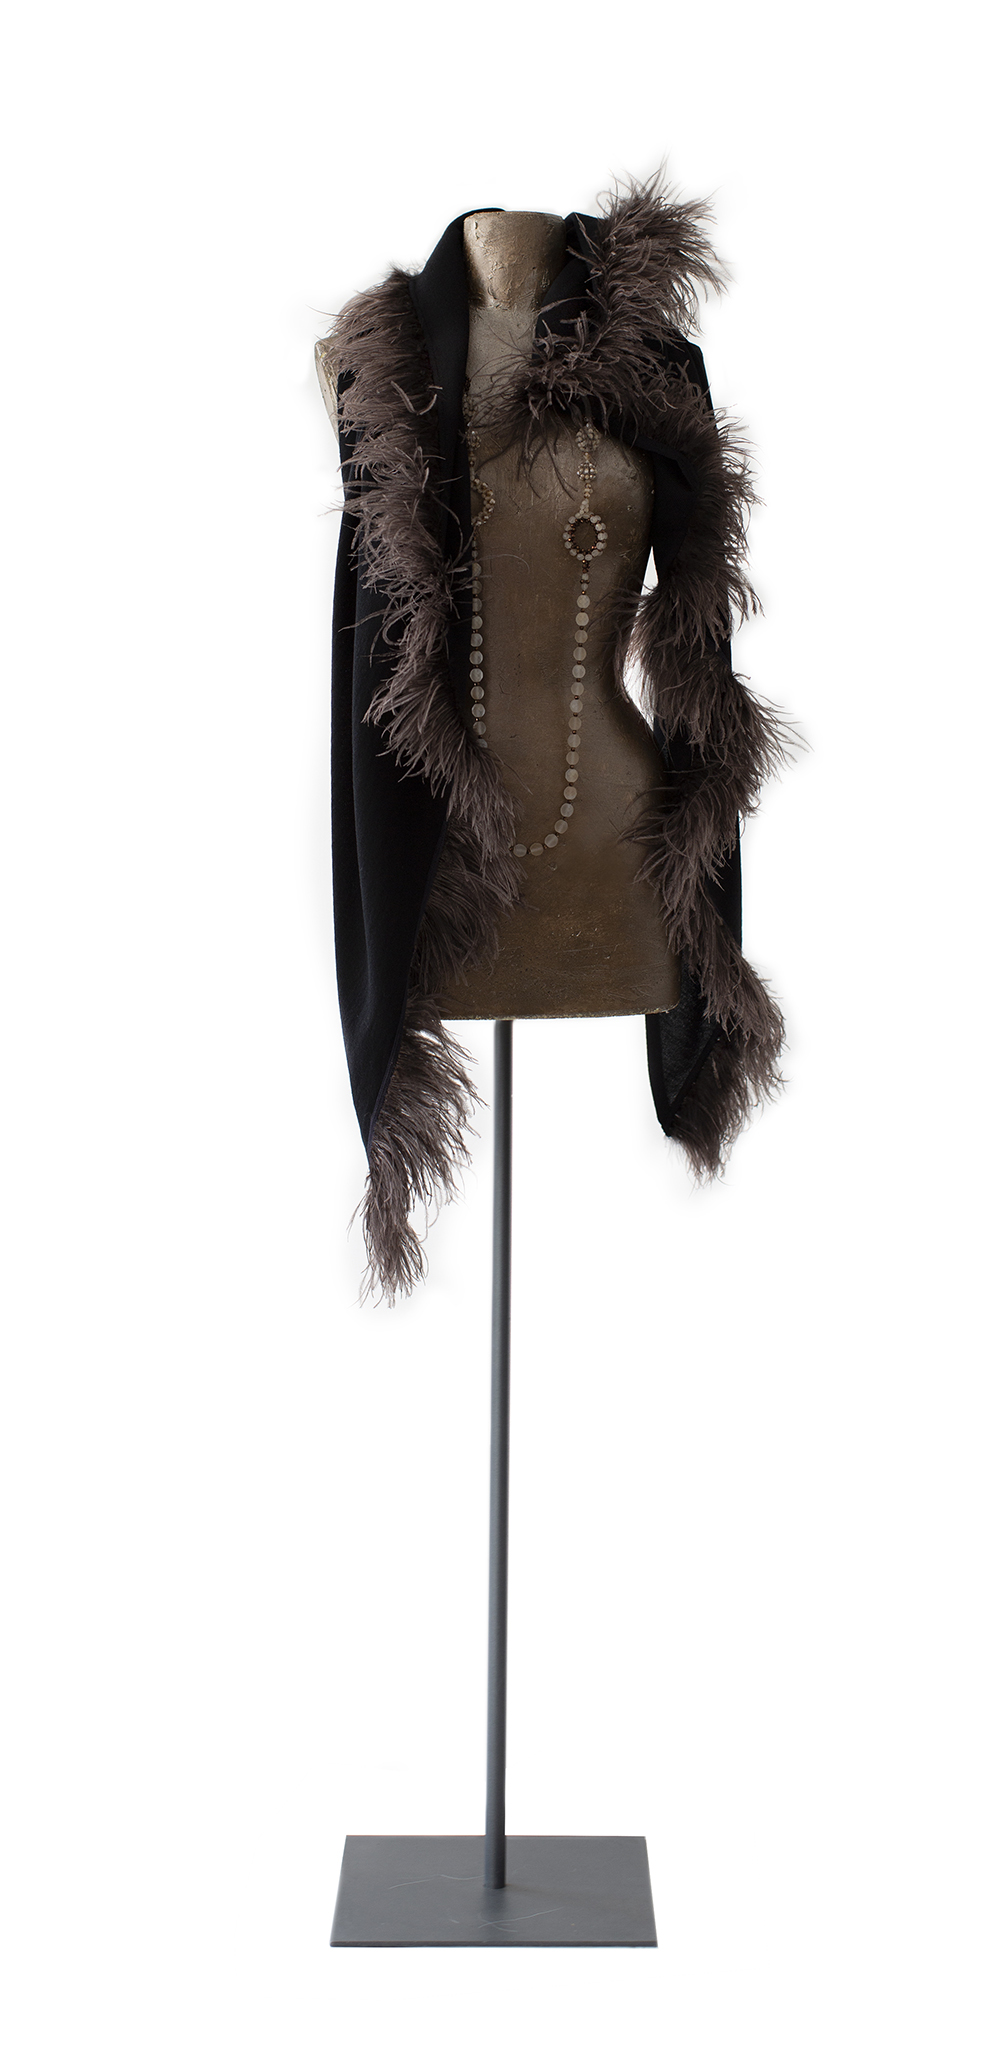 Stole with feathers, black